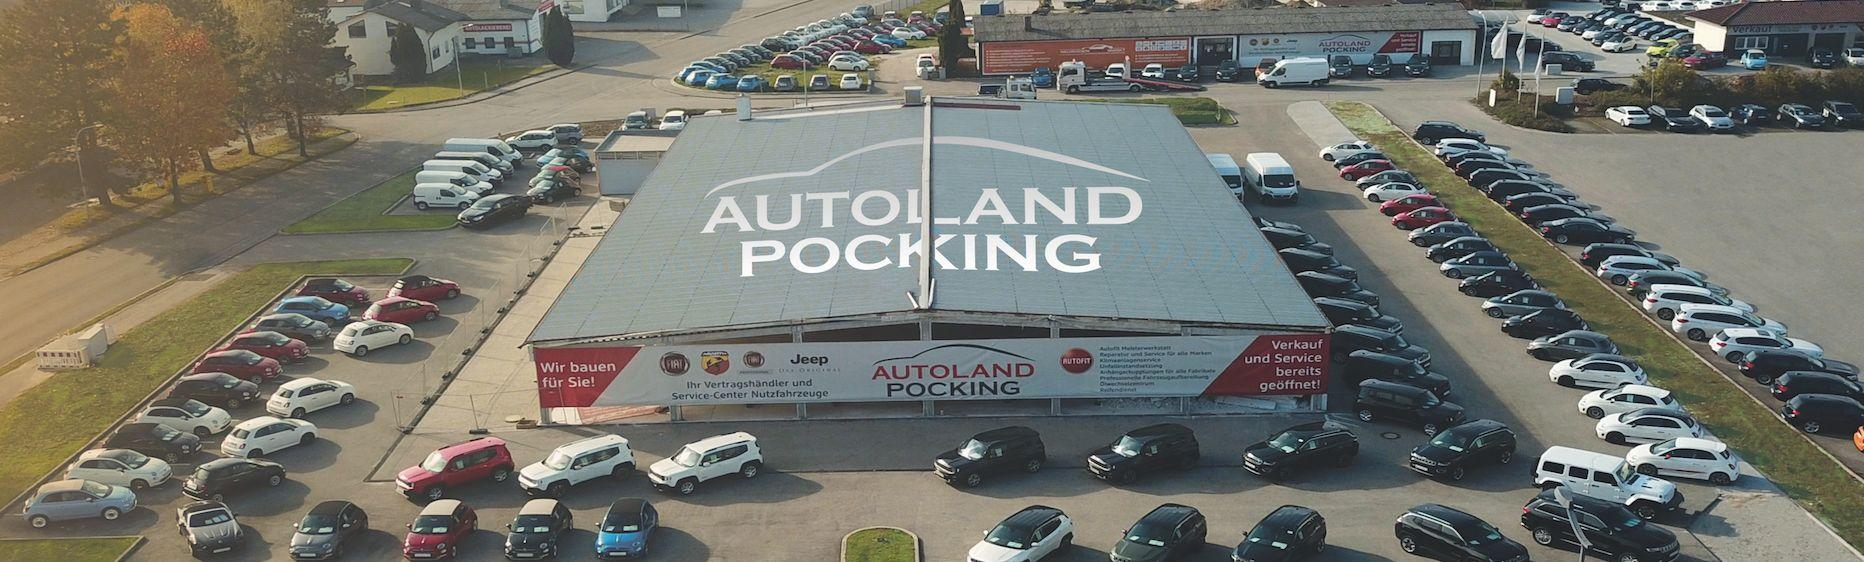 Autoland Pocking